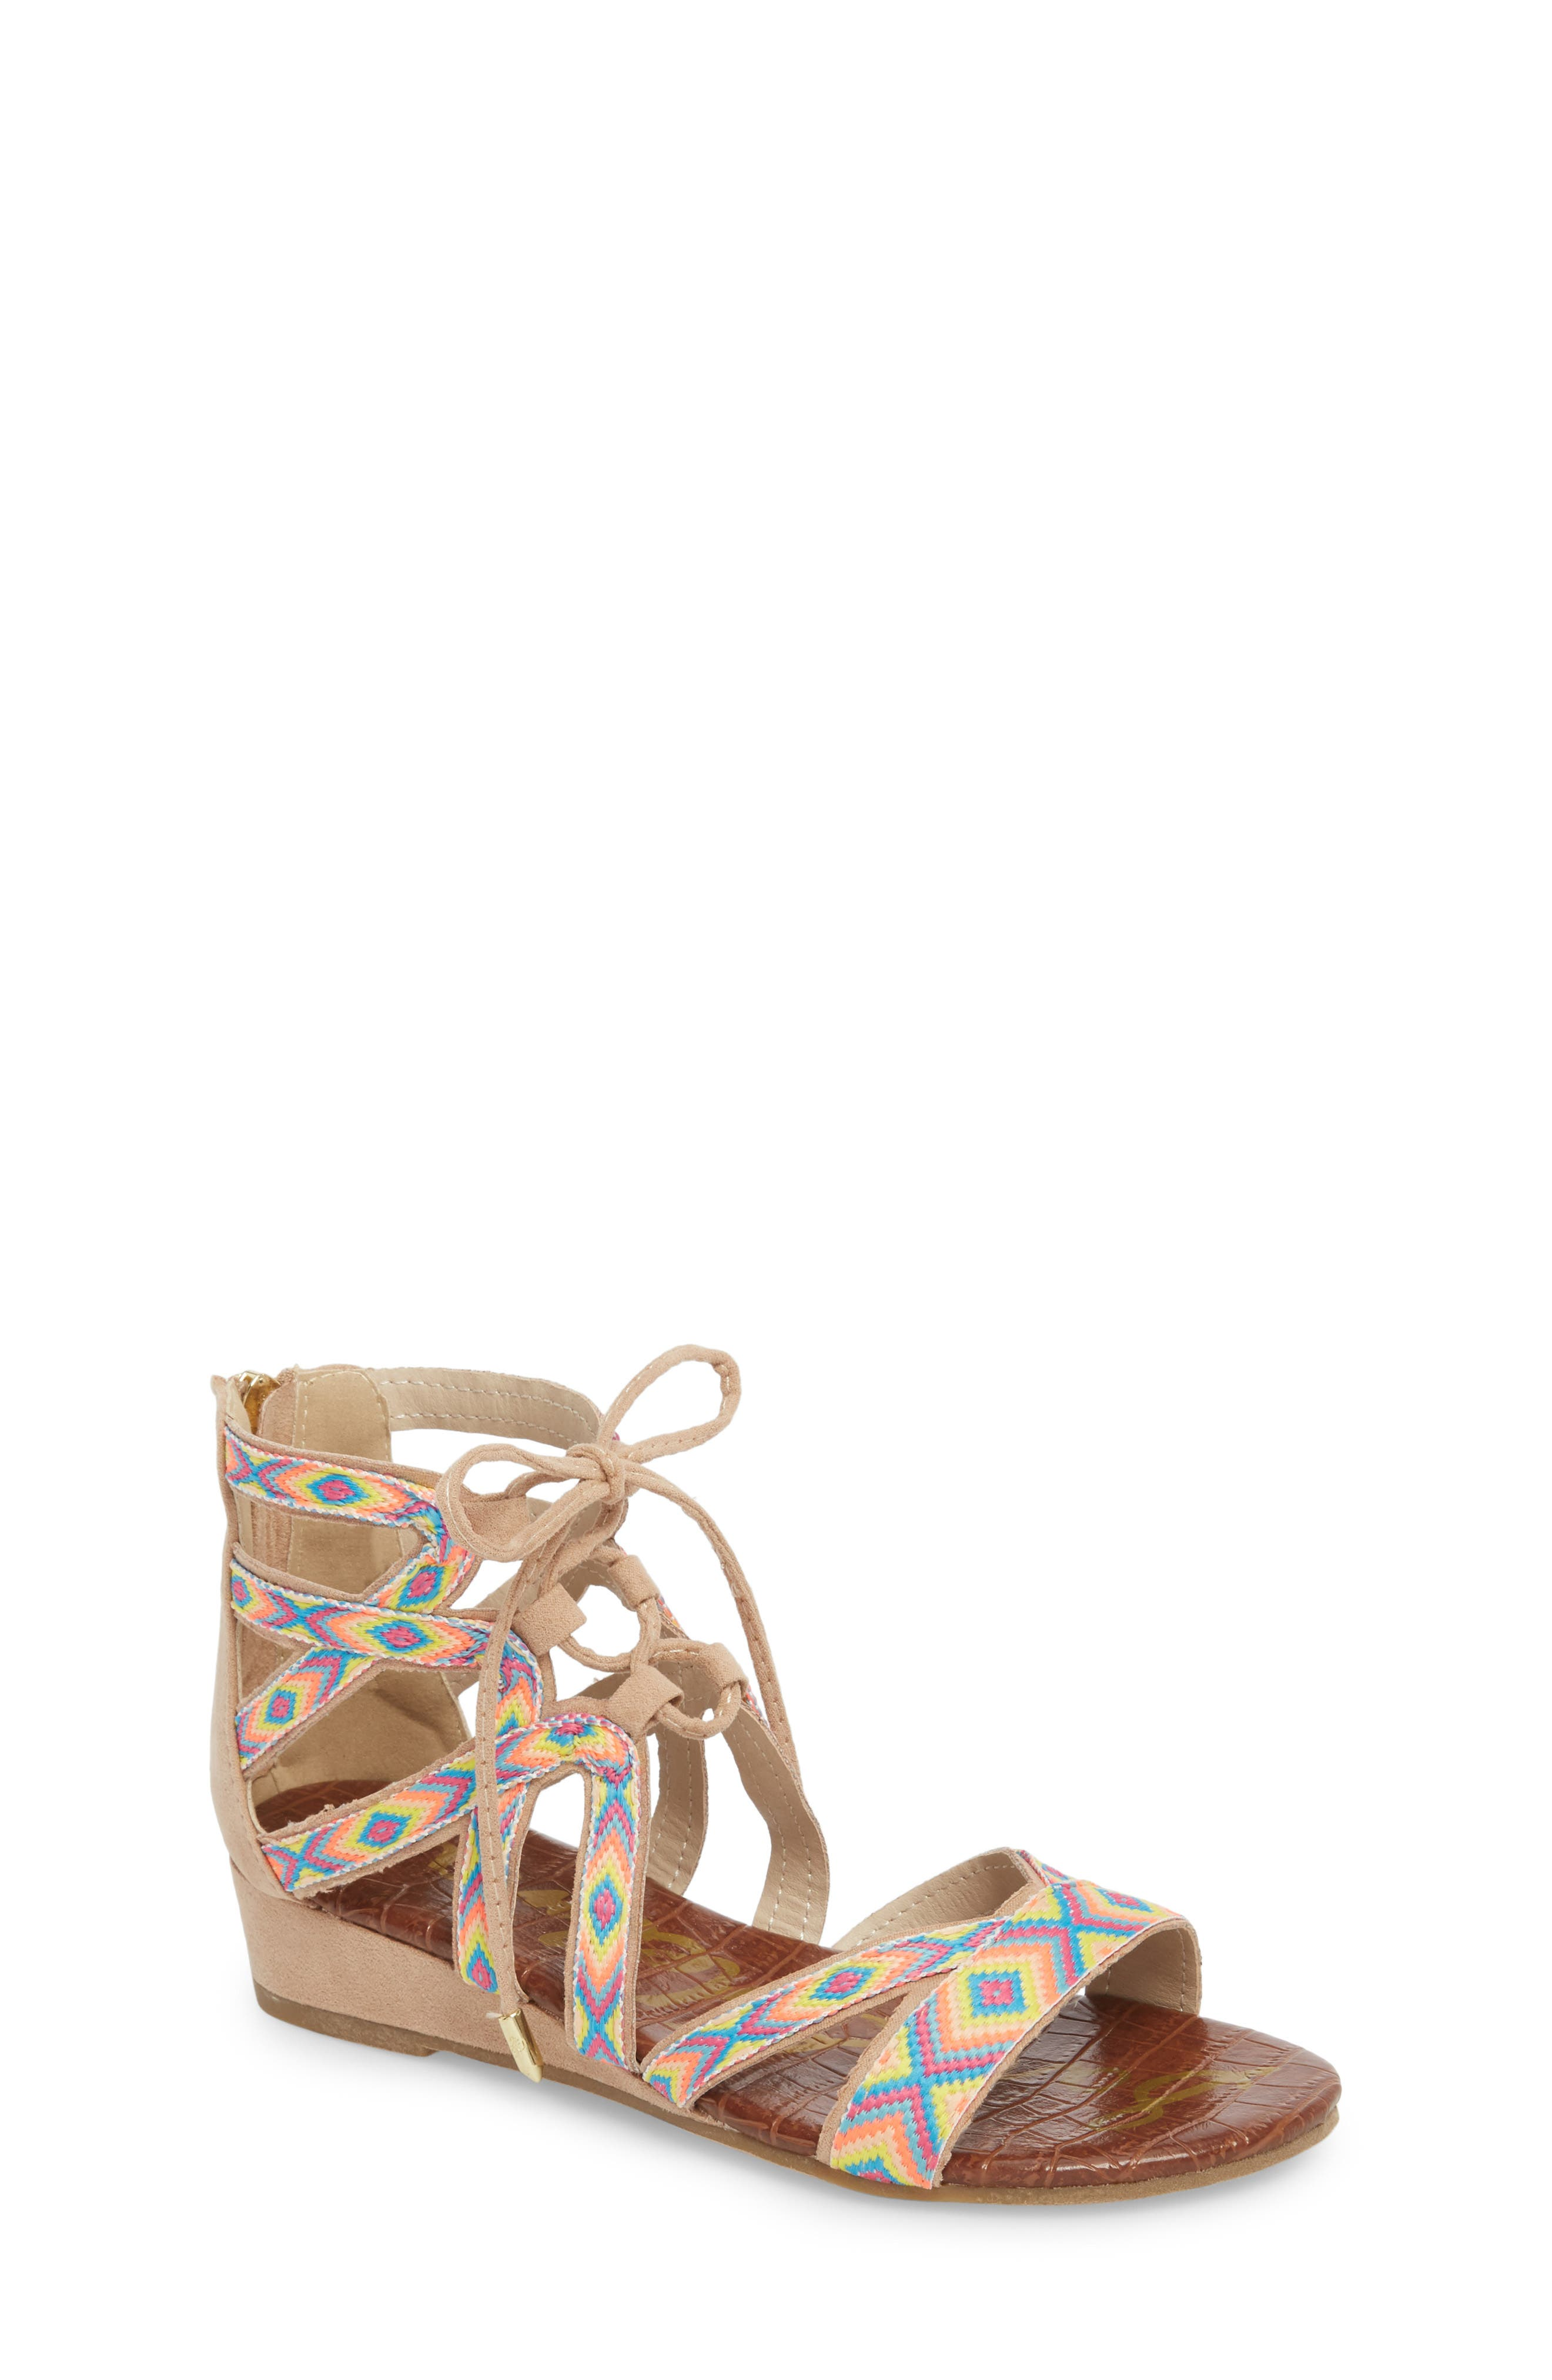 Danica Friendship Ghillie Wedge Sandal,                             Main thumbnail 1, color,                             Natural Faux Suede